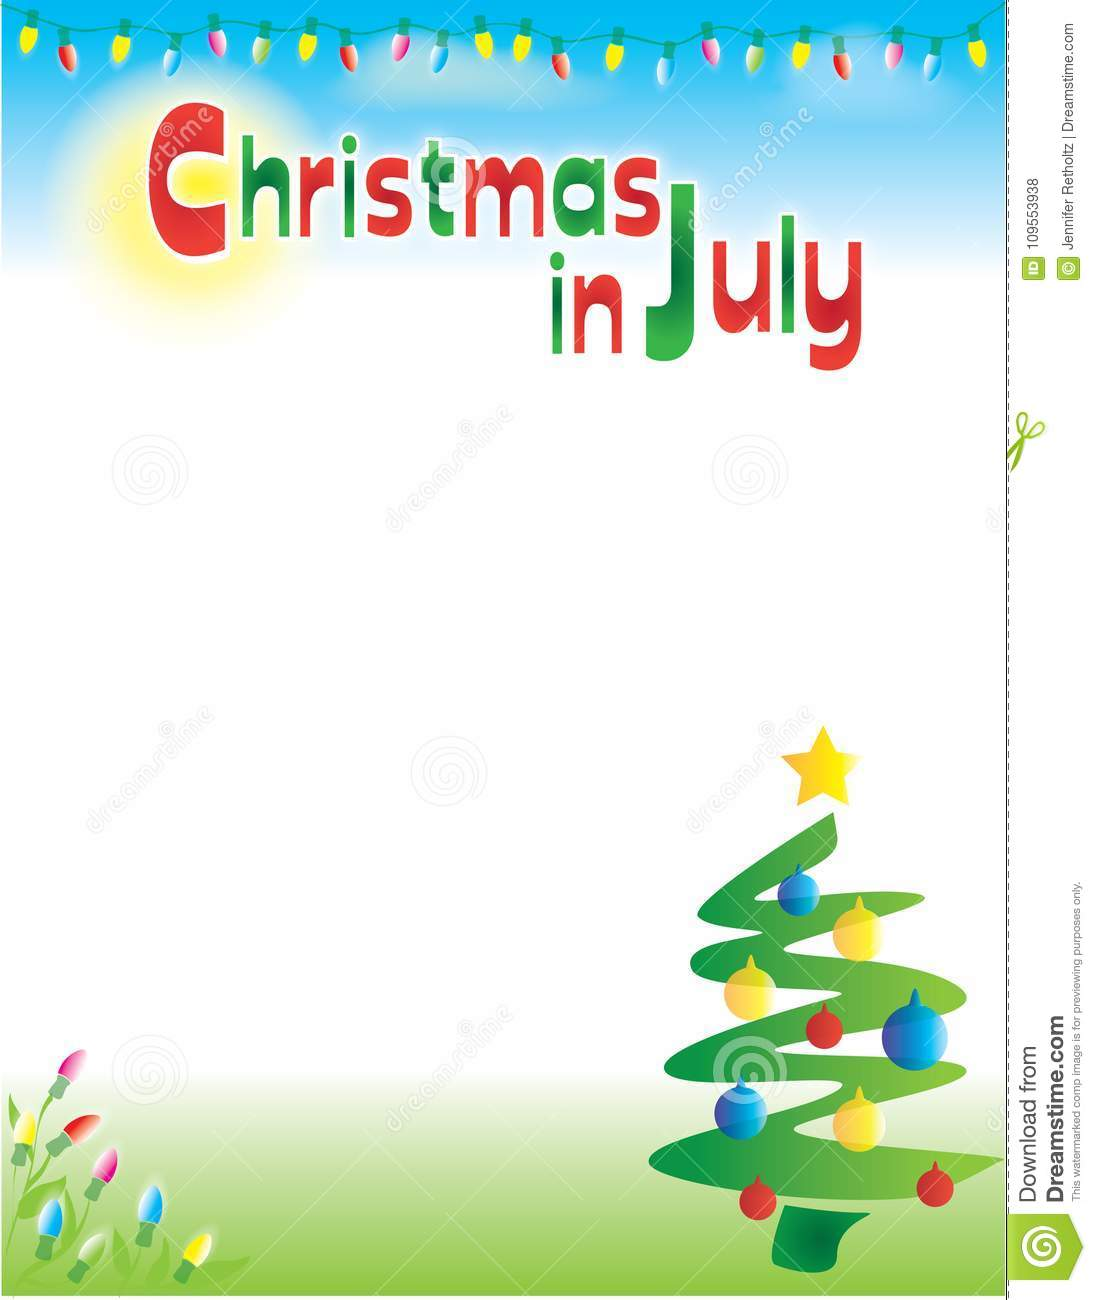 Christmas In July Free Graphics.Christmas In July Postcard Flyer Background Template Stock